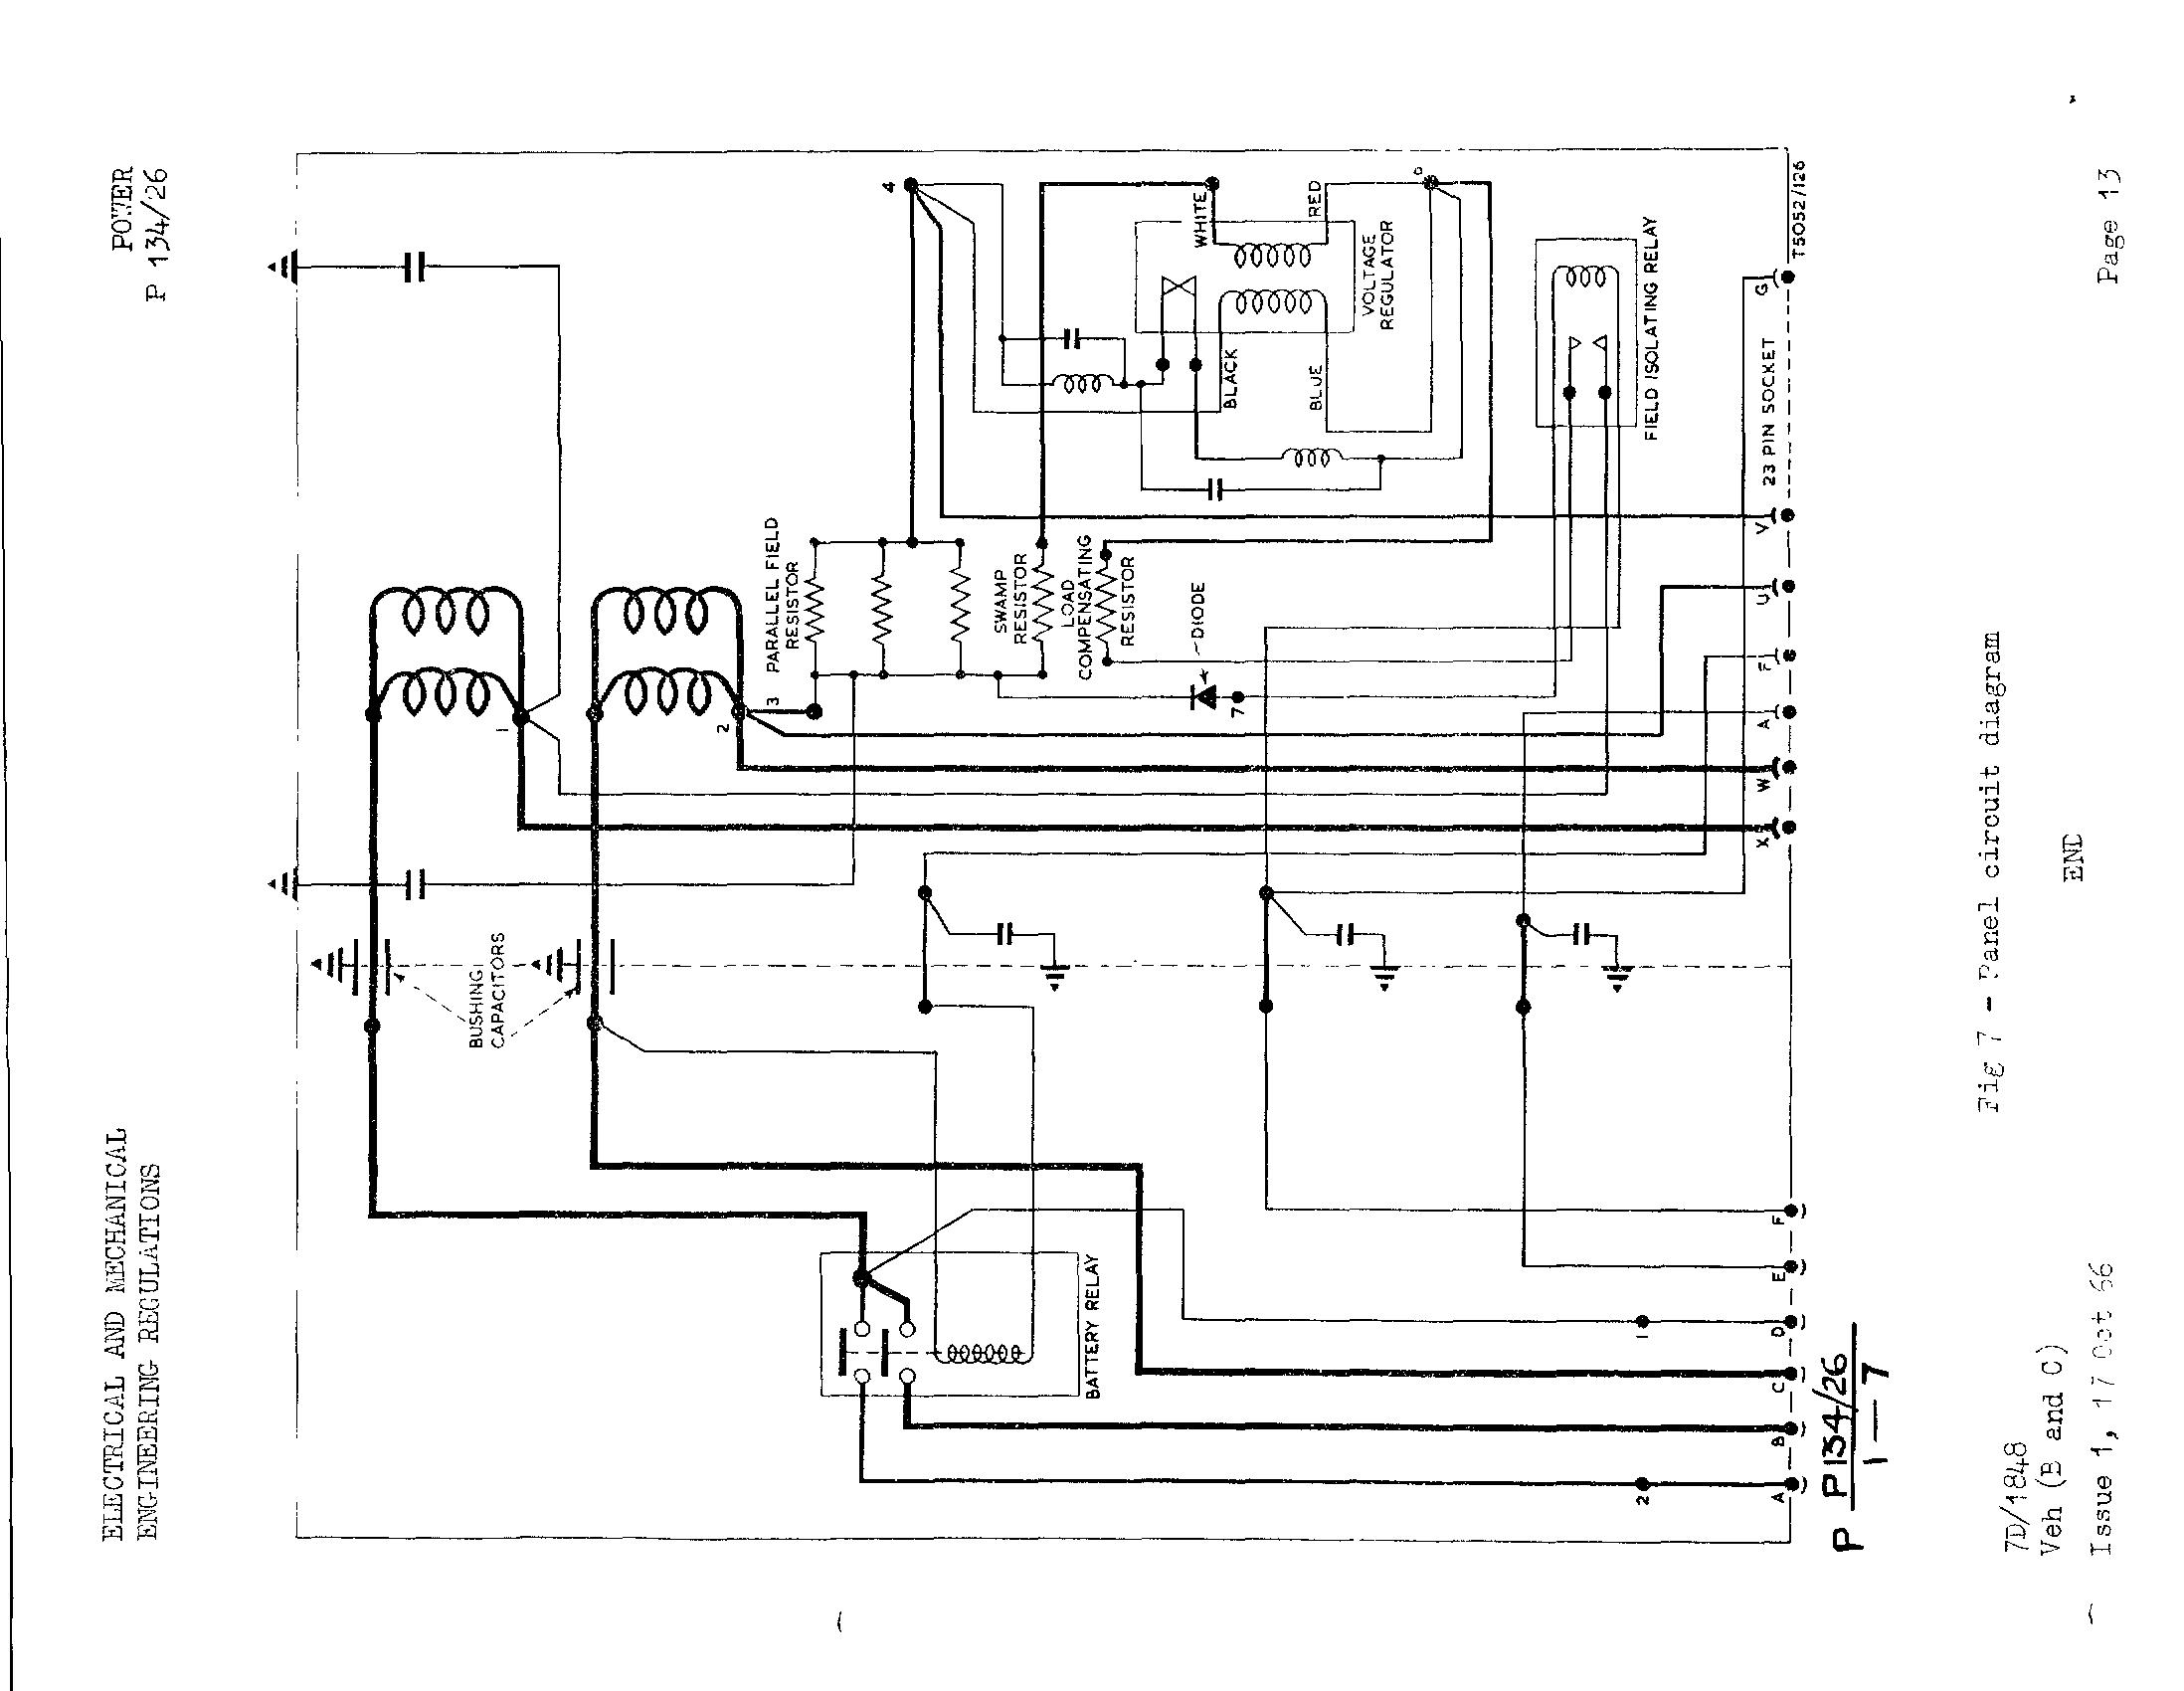 Land Rovers Military Specifics Rover V8 Electronic Ignition Wiring Diagram These Are Panel Generator No 9 Mk 2 From Emer Power W 134 26